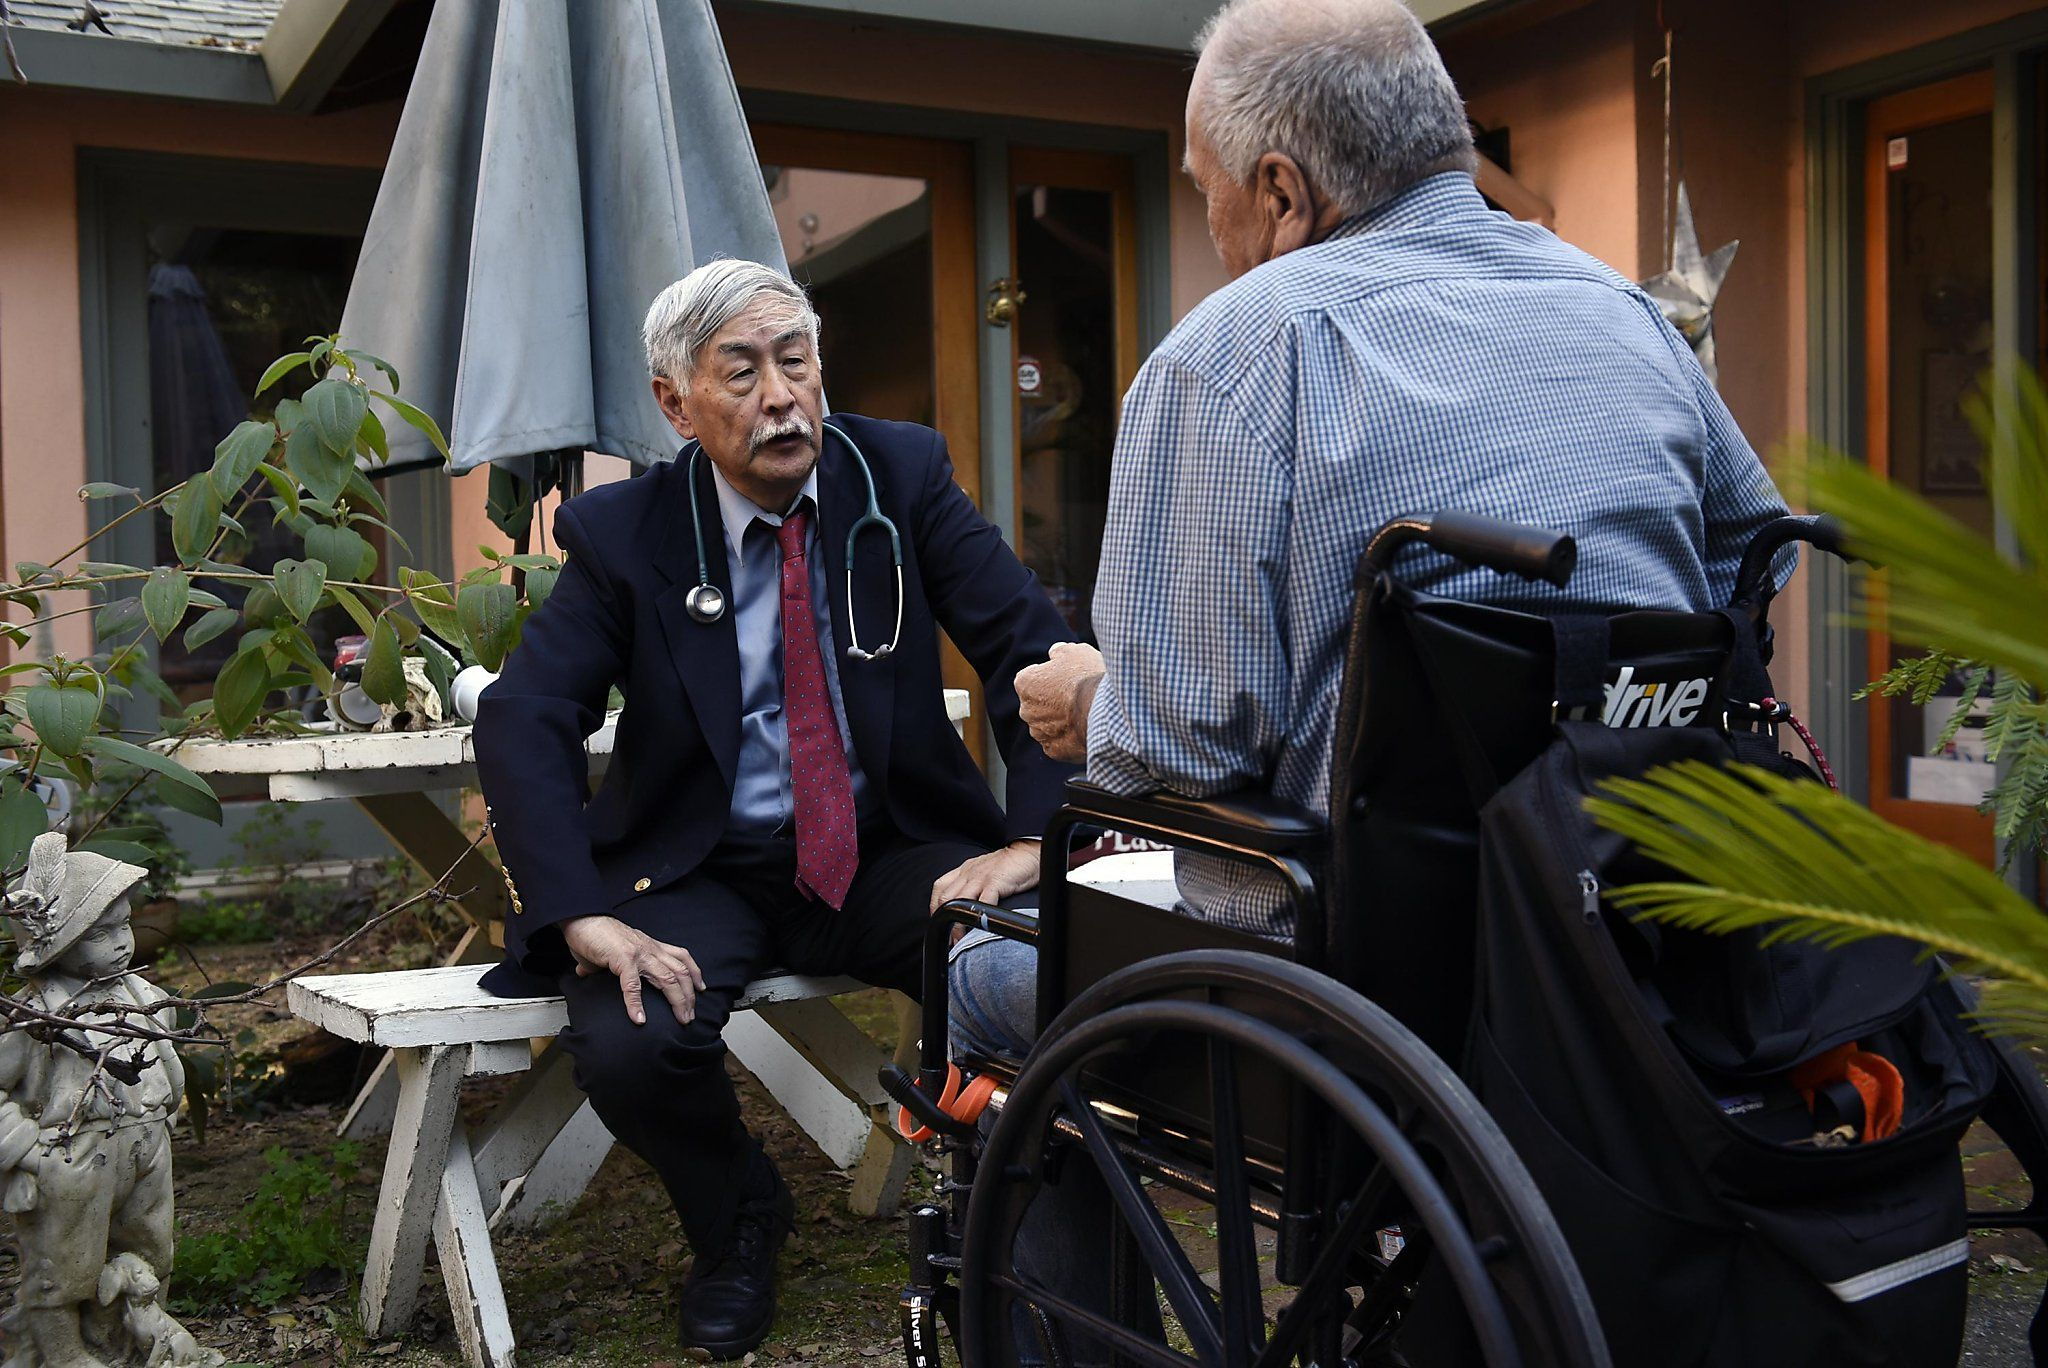 For many seniors, medical cannabis is more threat than cure